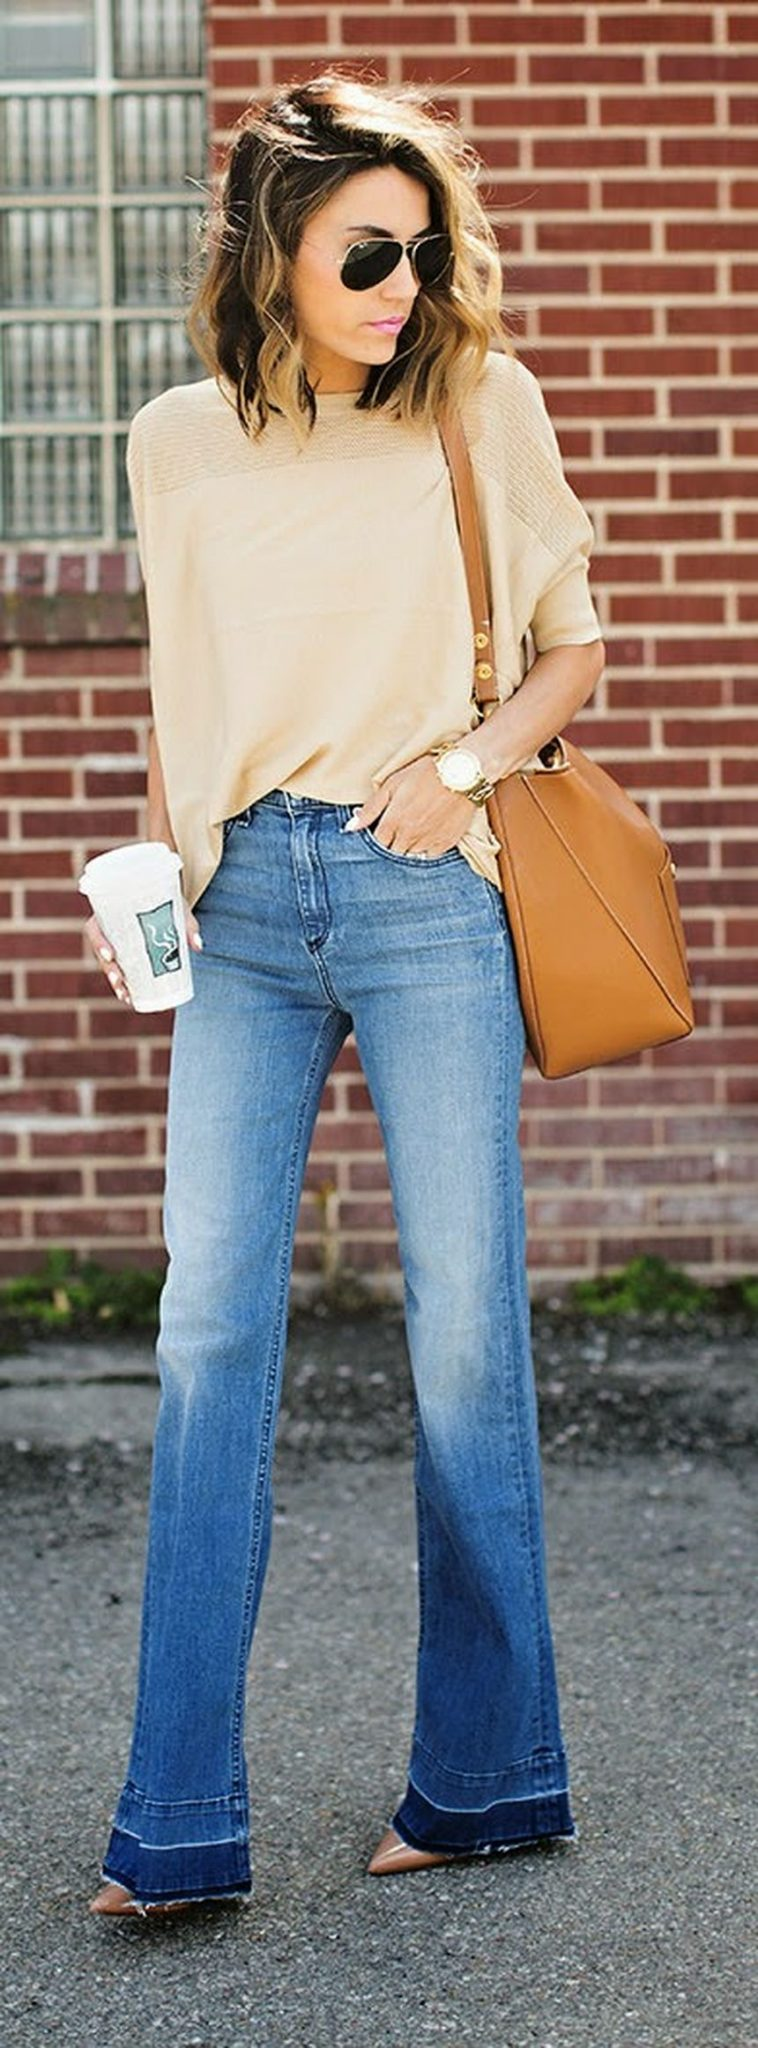 High waisted jeans outfit style 32